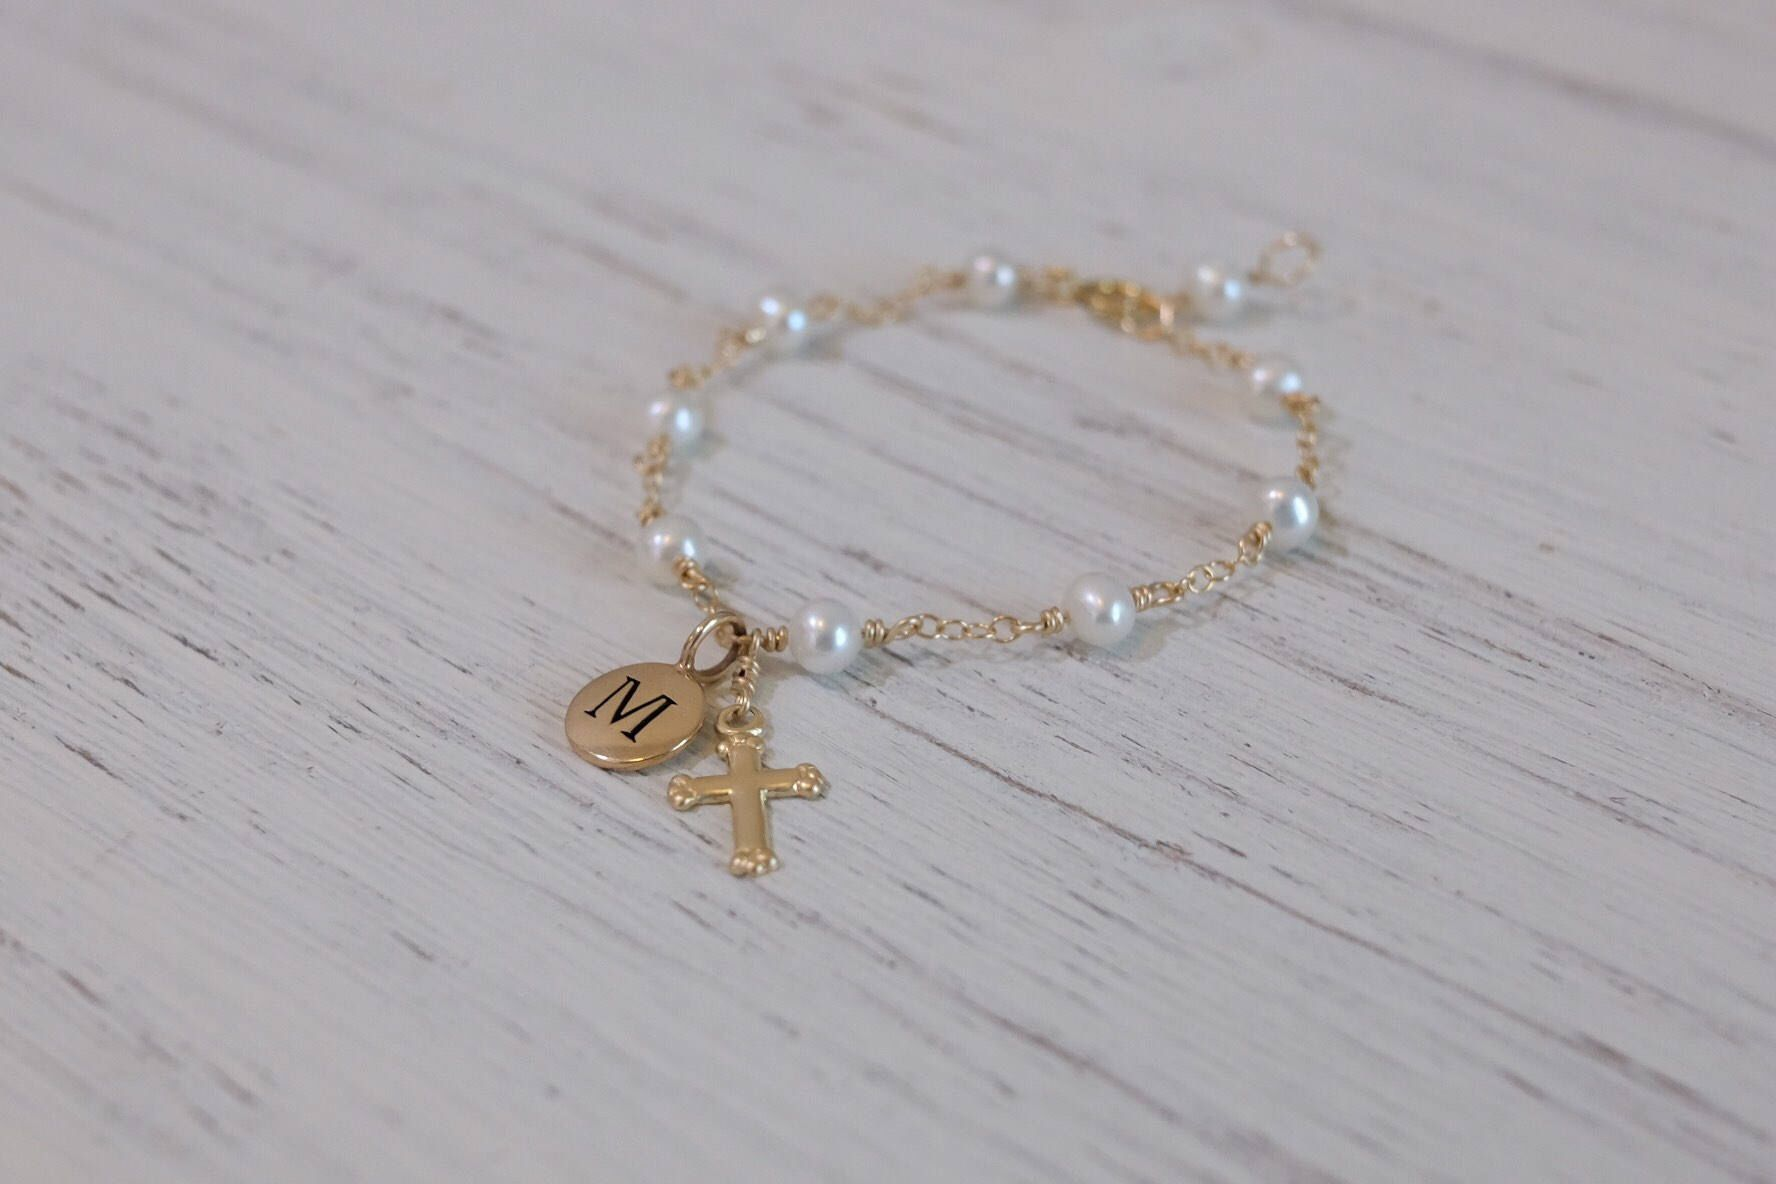 Sterling Silver Bracelet with Cross for Girl/'s Christening Day Gift Jewellery